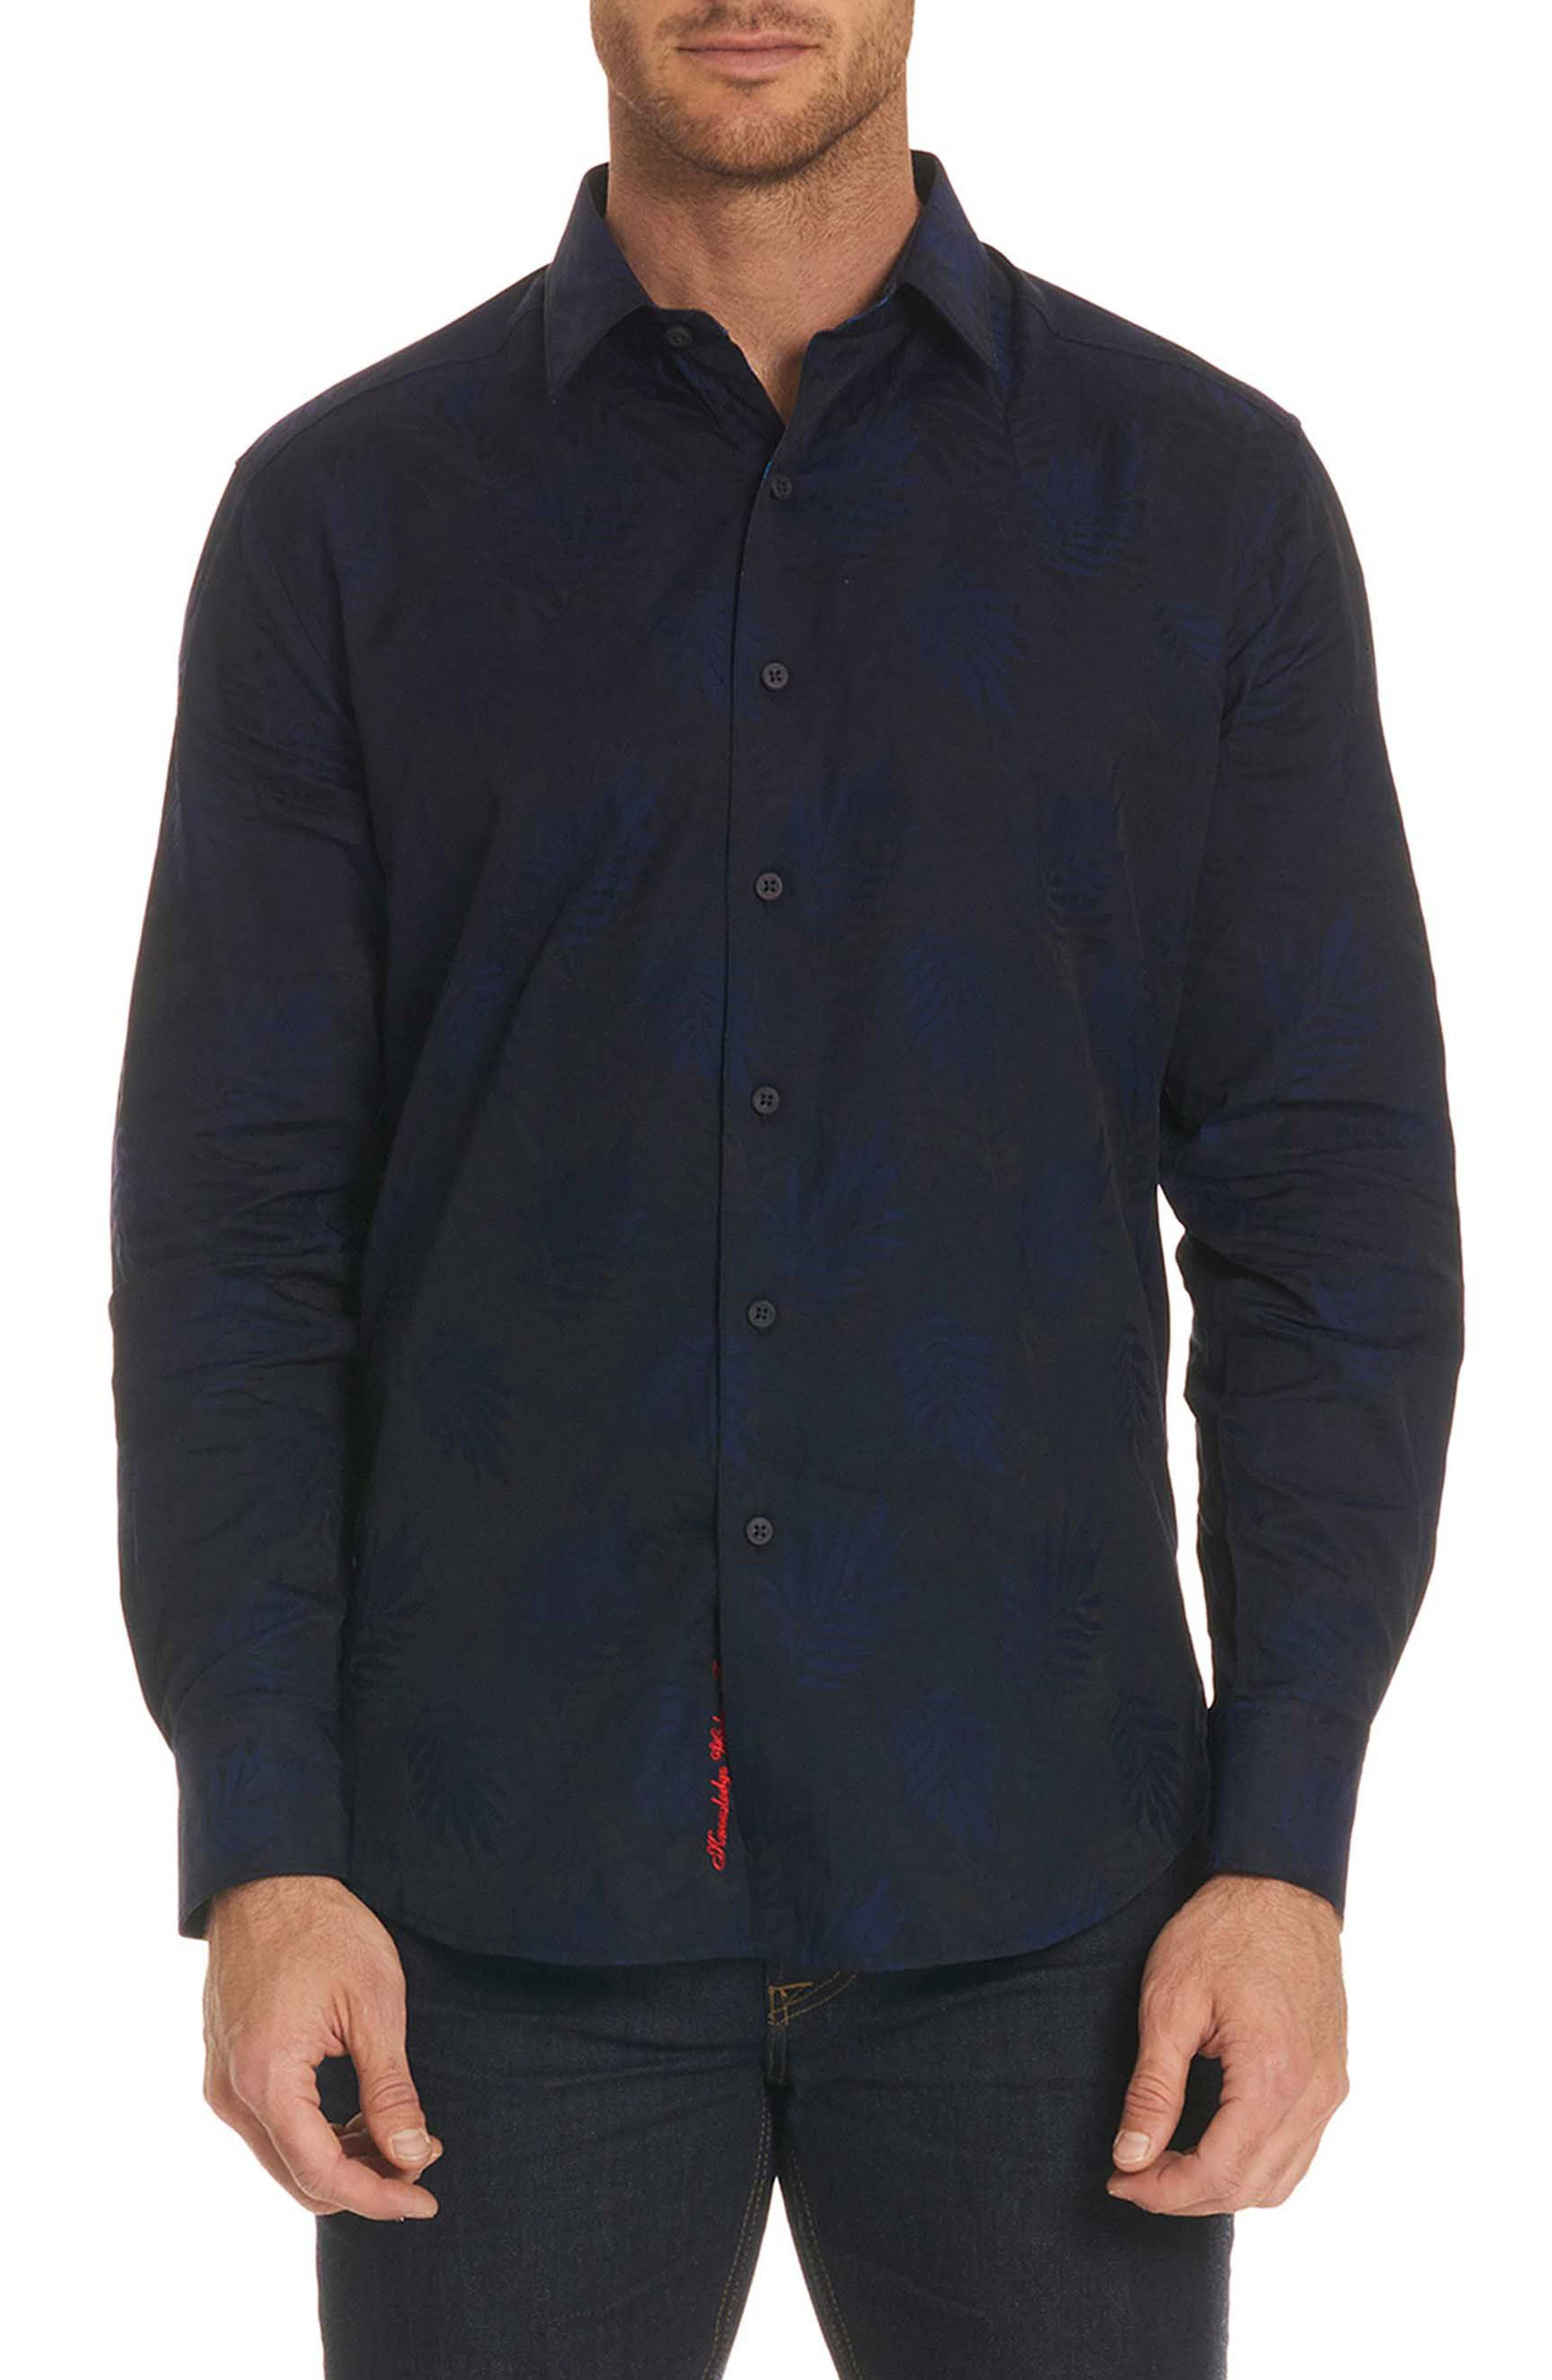 Monte Classic Fit Sport Shirt,                         Main,                         color, Midnight Navy